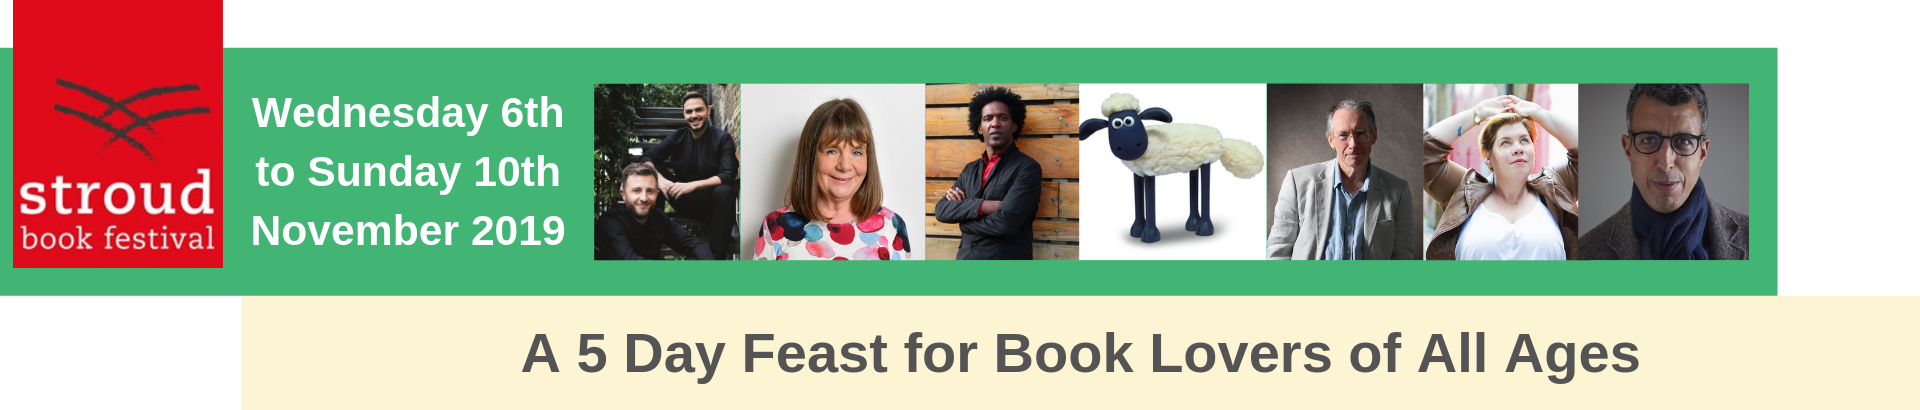 header advertising Stroud Book Festival 2019